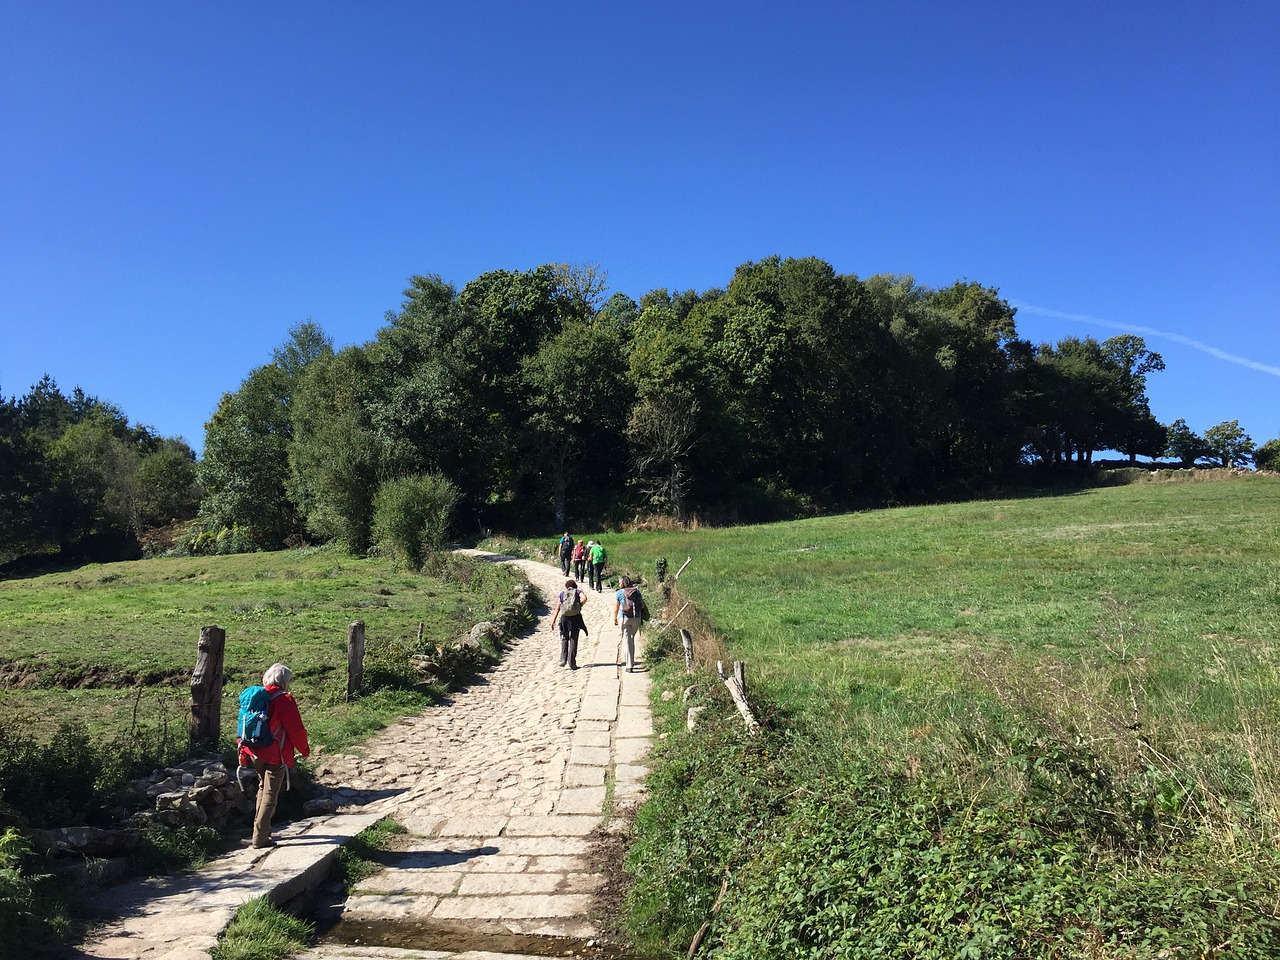 Camino De Santiago, The Ultimate European Pilgrimage